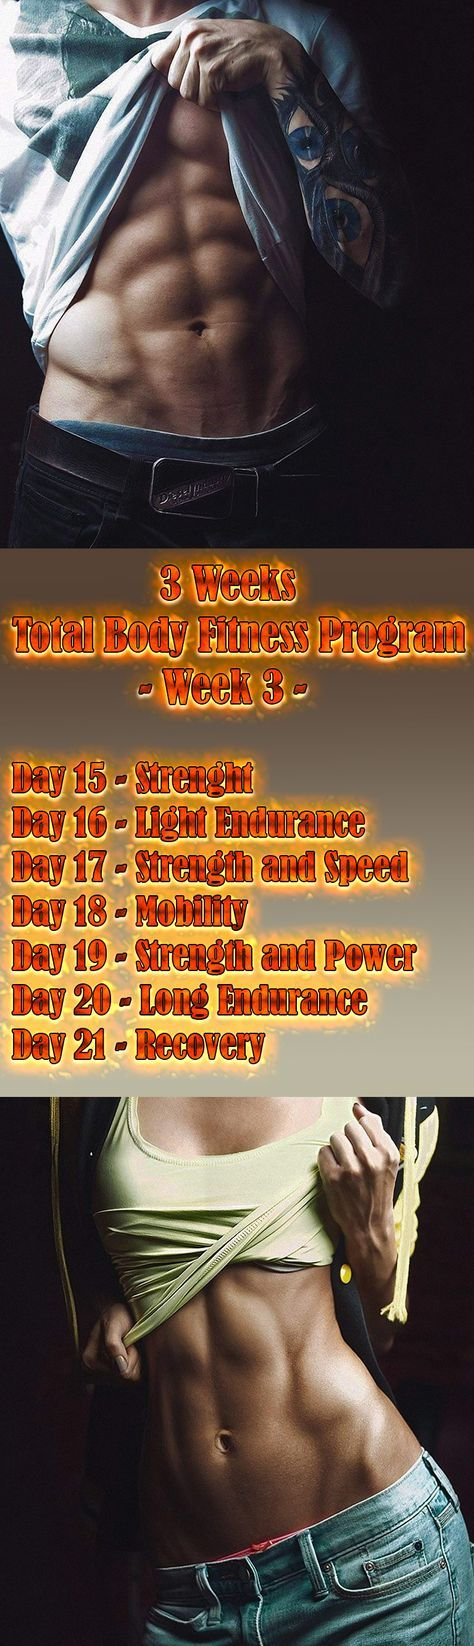 Follow this total body fitness program and you'll emerge 21 days later stronger, faster, and more flexible — and looking and feeling better... #FitnessProgram #WeightLoss #workout #Fitness #strength #chest #abs #legs